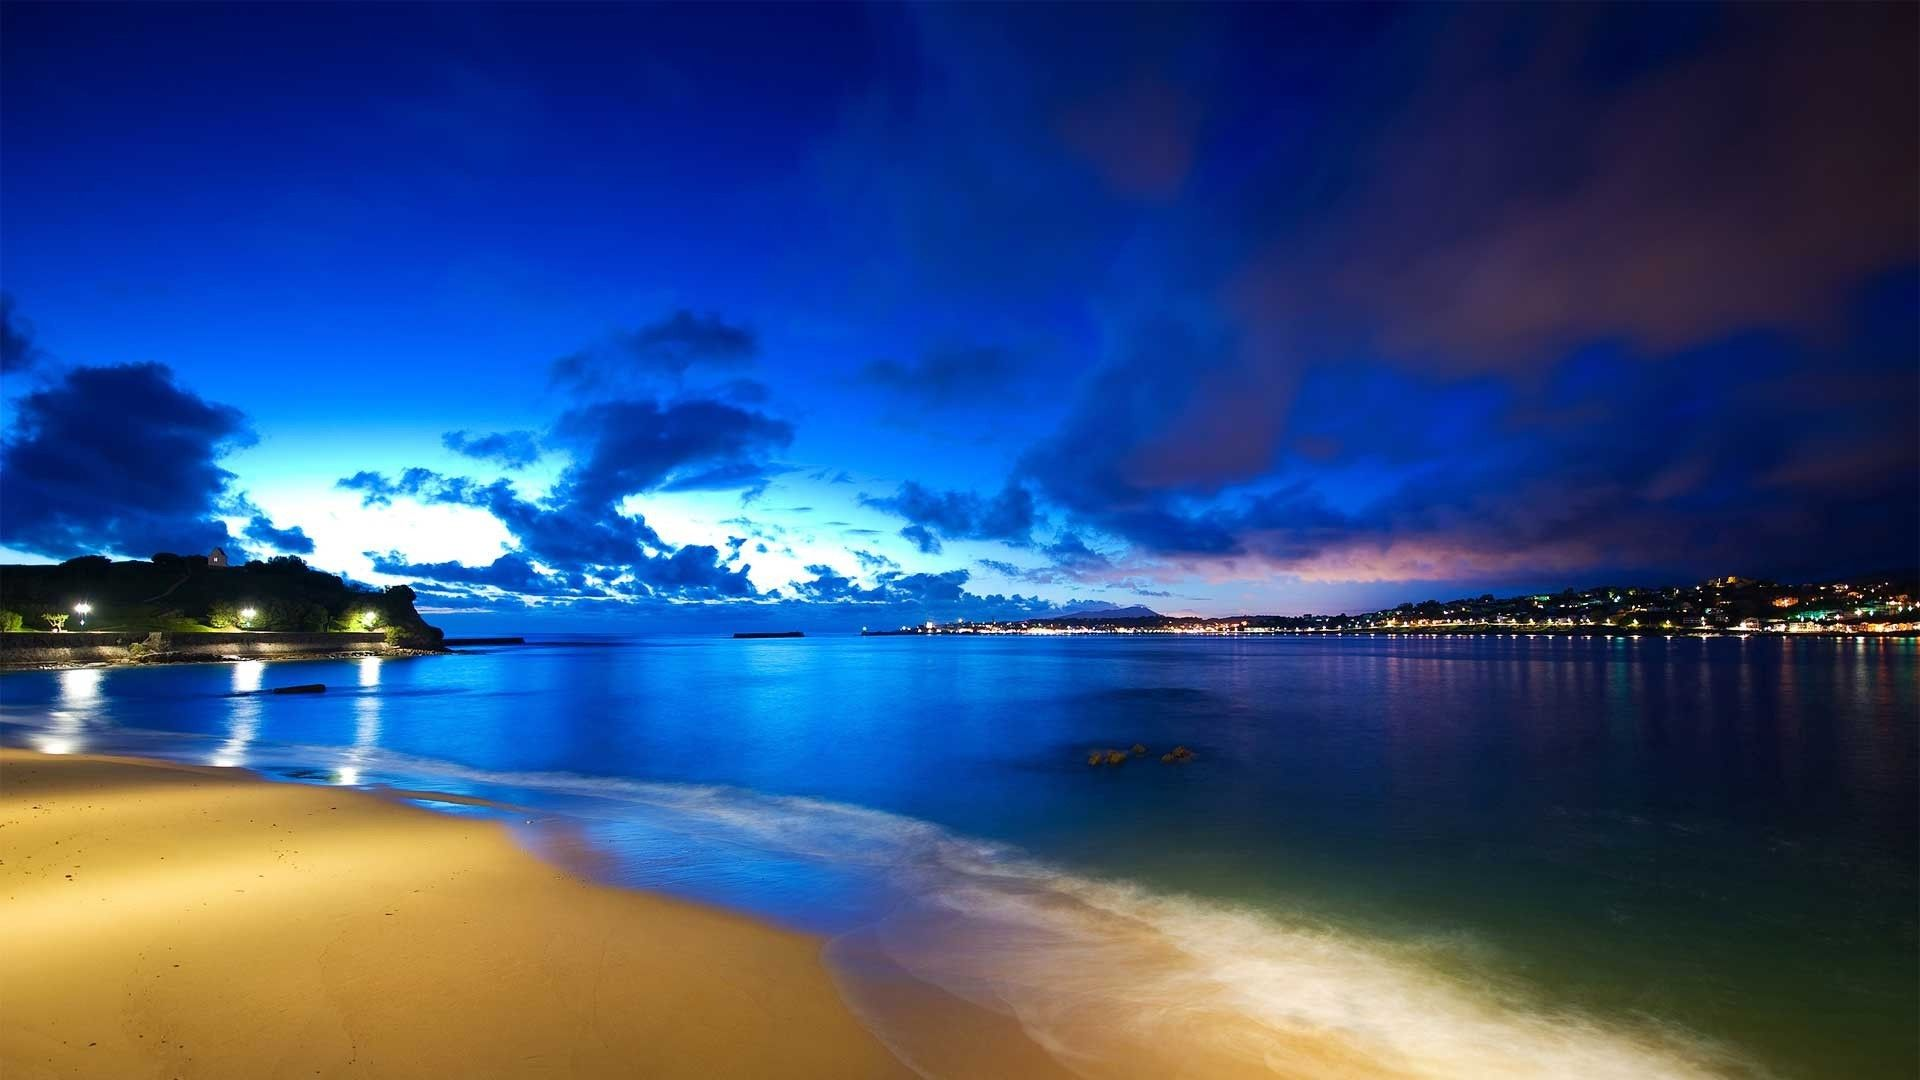 The Wallpapers Of Night Beach